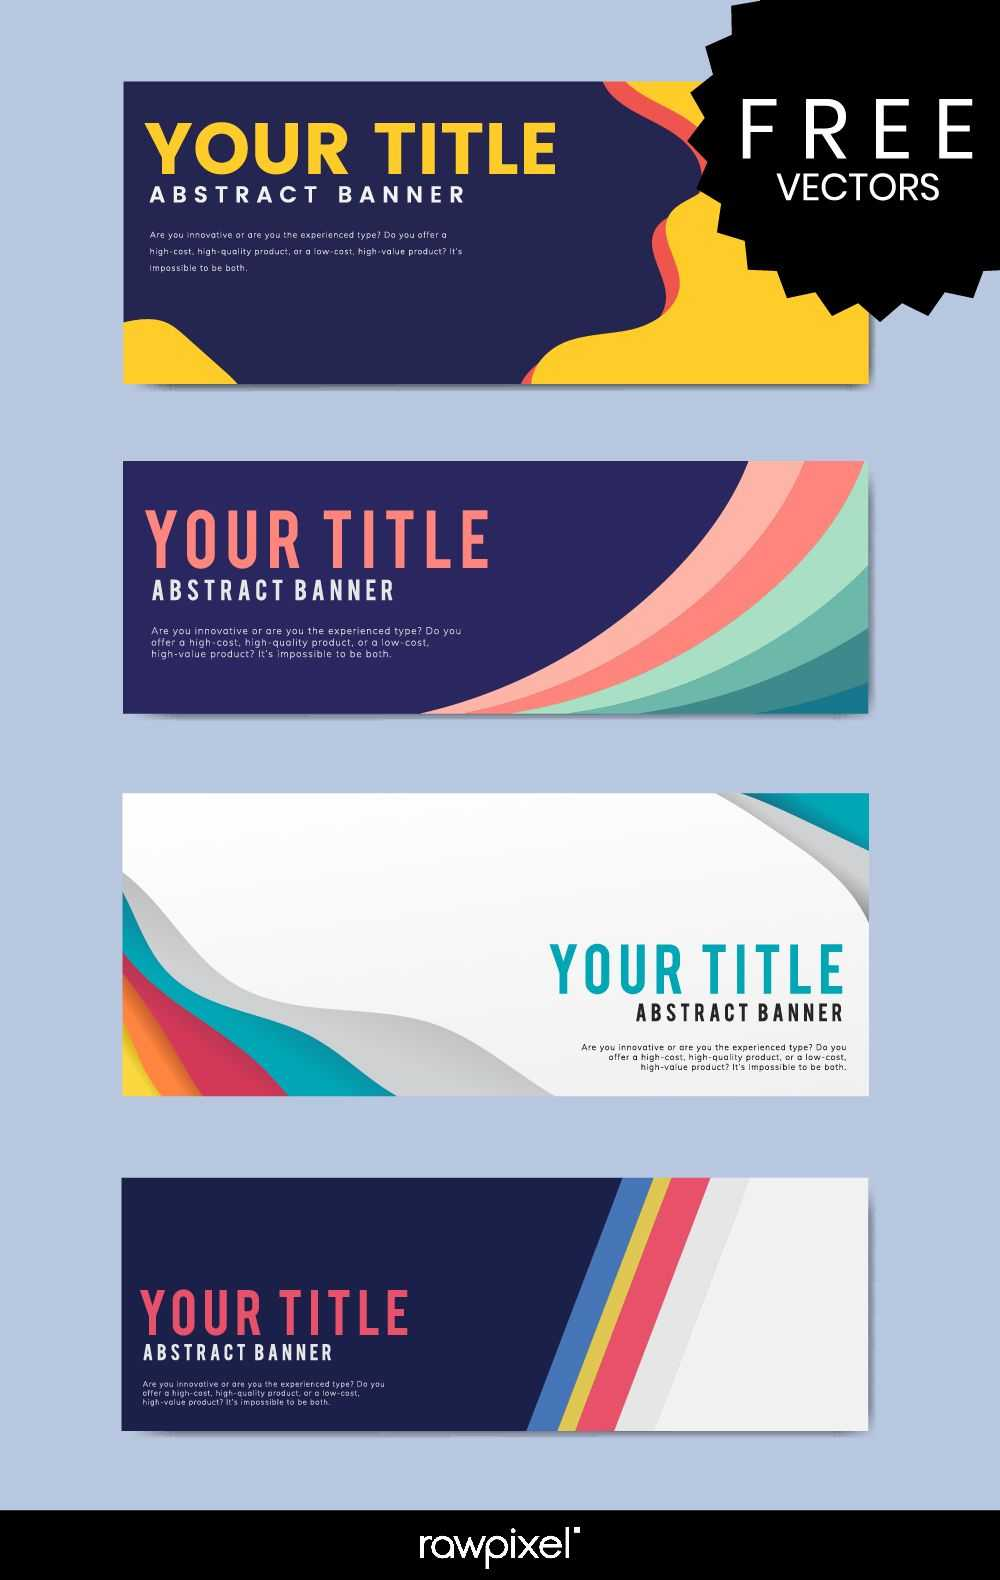 Download Free Modern Business Banner Templates At Rawpixel Inside Free Website Banner Templates Download